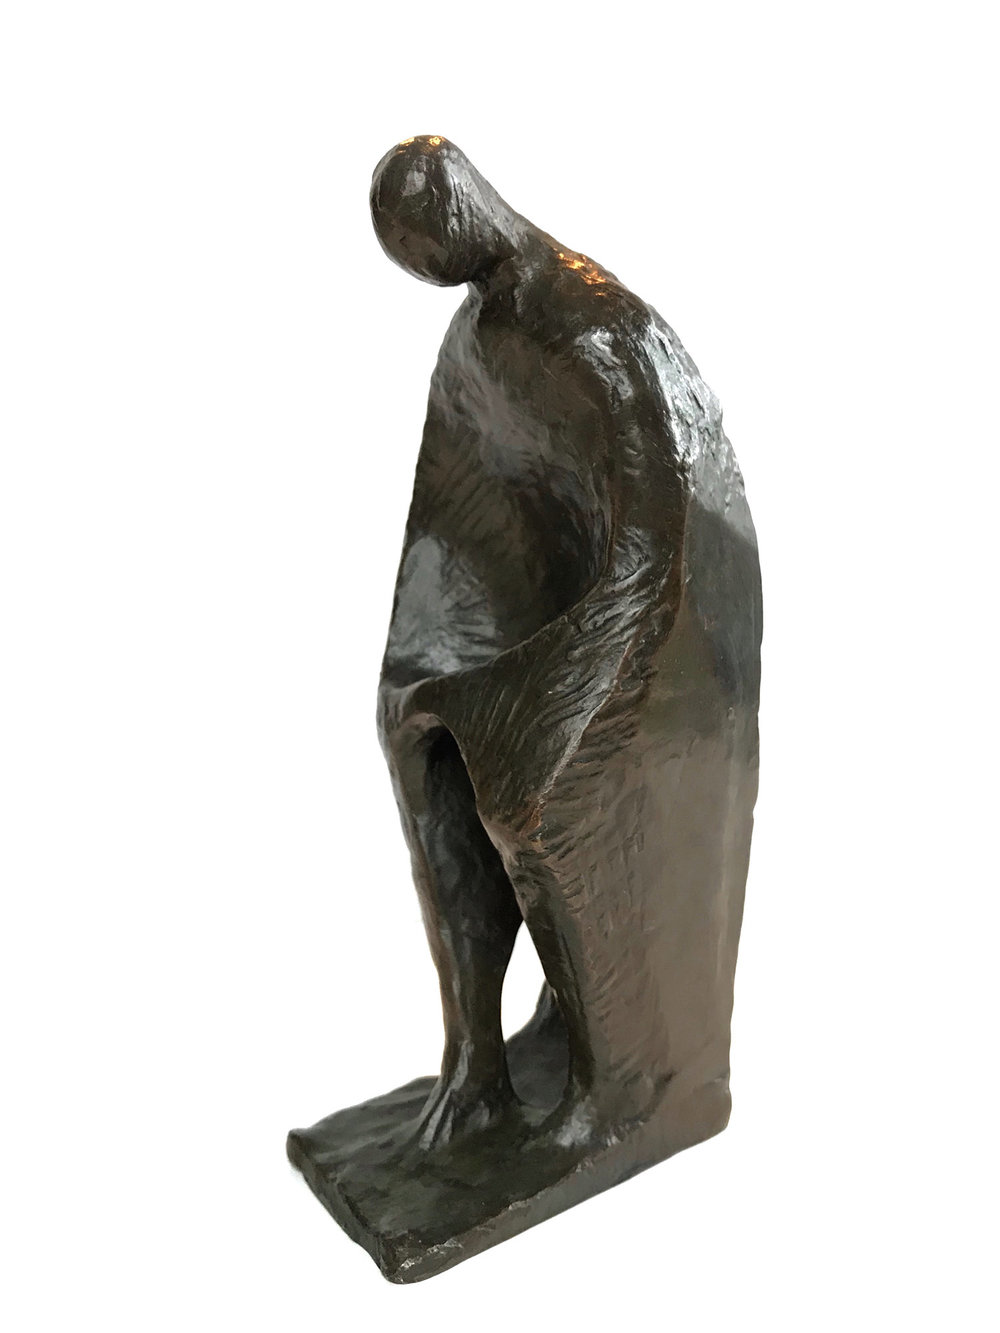 Seated Figure Looking Down, 20th Century